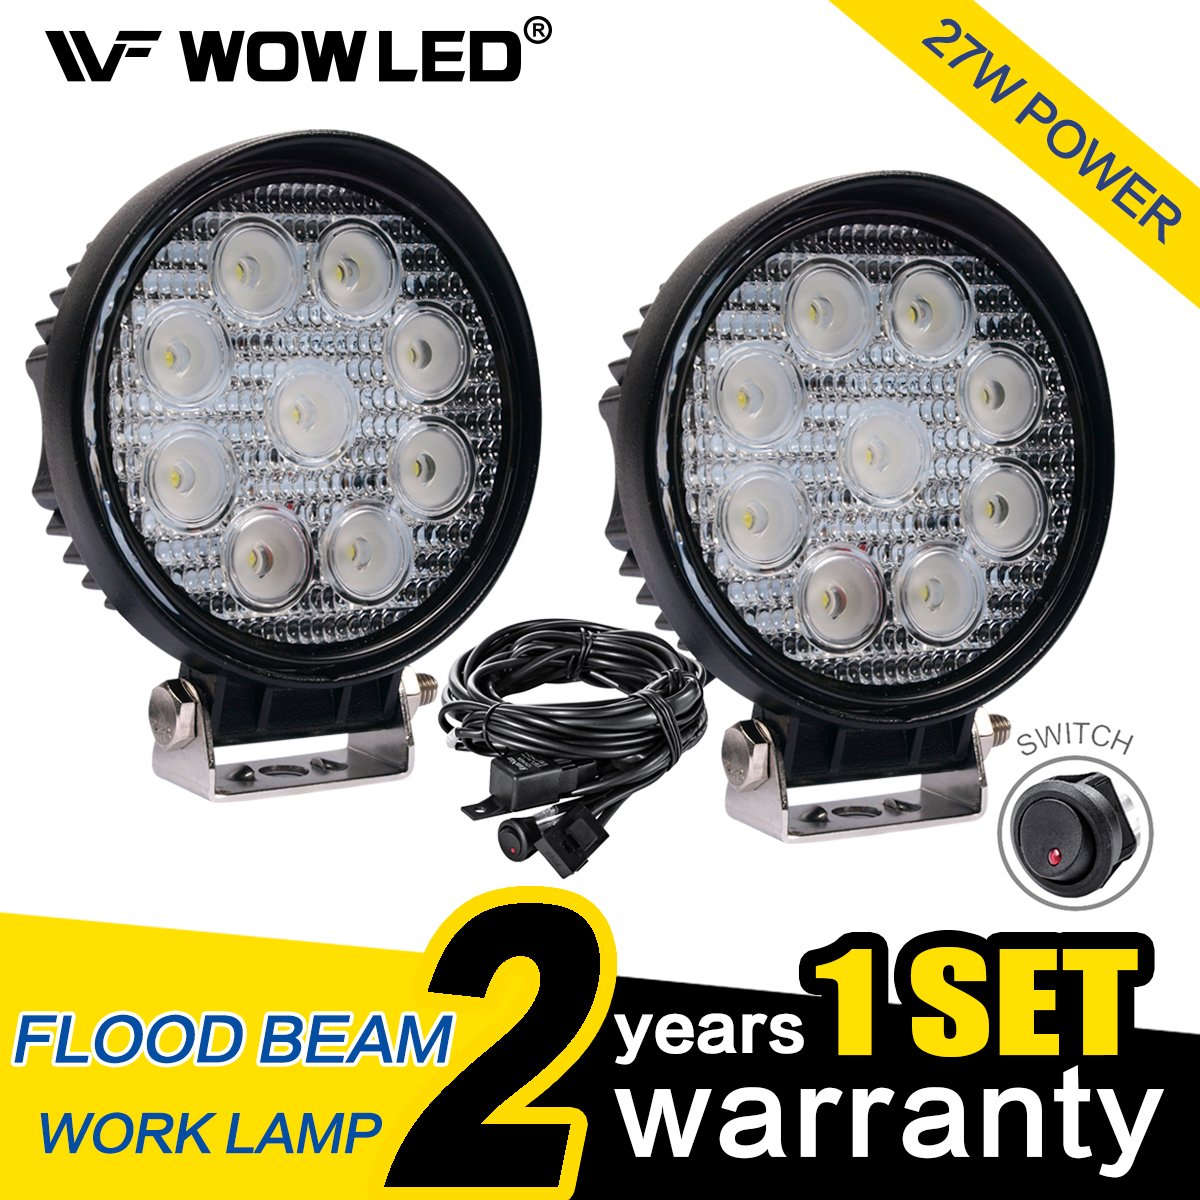 Wow 2 X 27w Round Led Work Light Lamp Offroad Floodlight Truck 4x4 Wiring A Atv